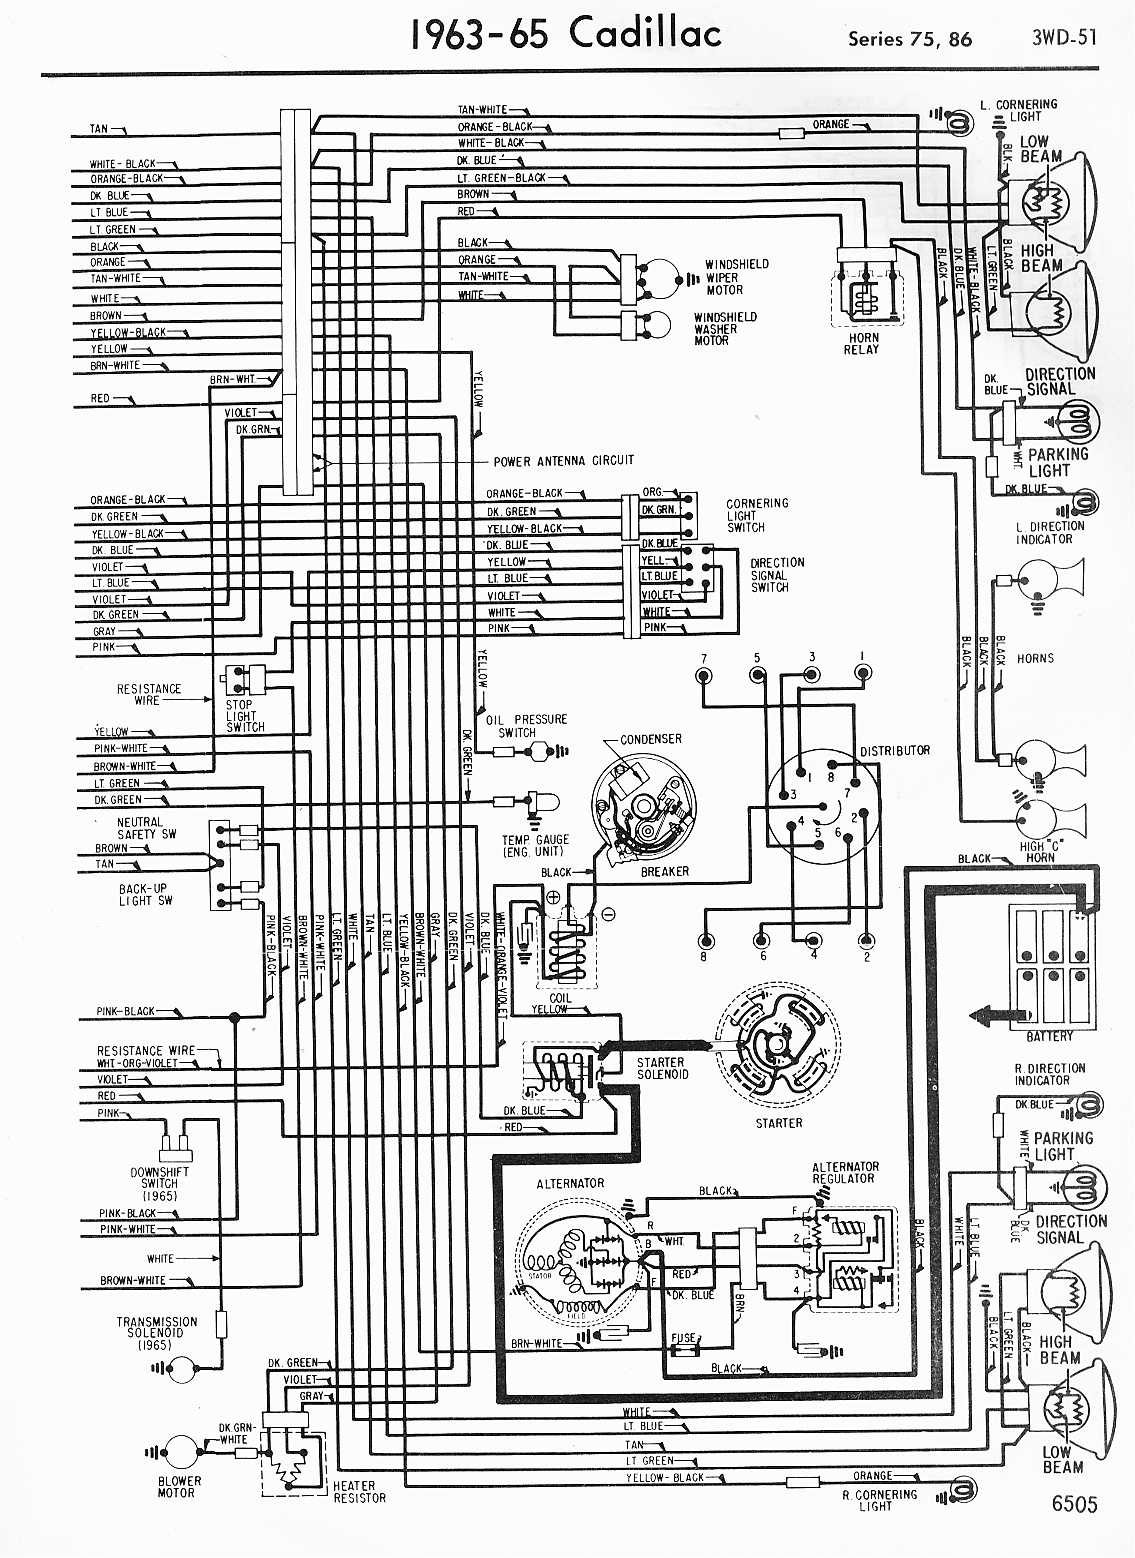 1996 cadillac deville wiring schematics i have a 1965 cadillac convertible with power windows. the ... 2012 cadillac wiring schematics